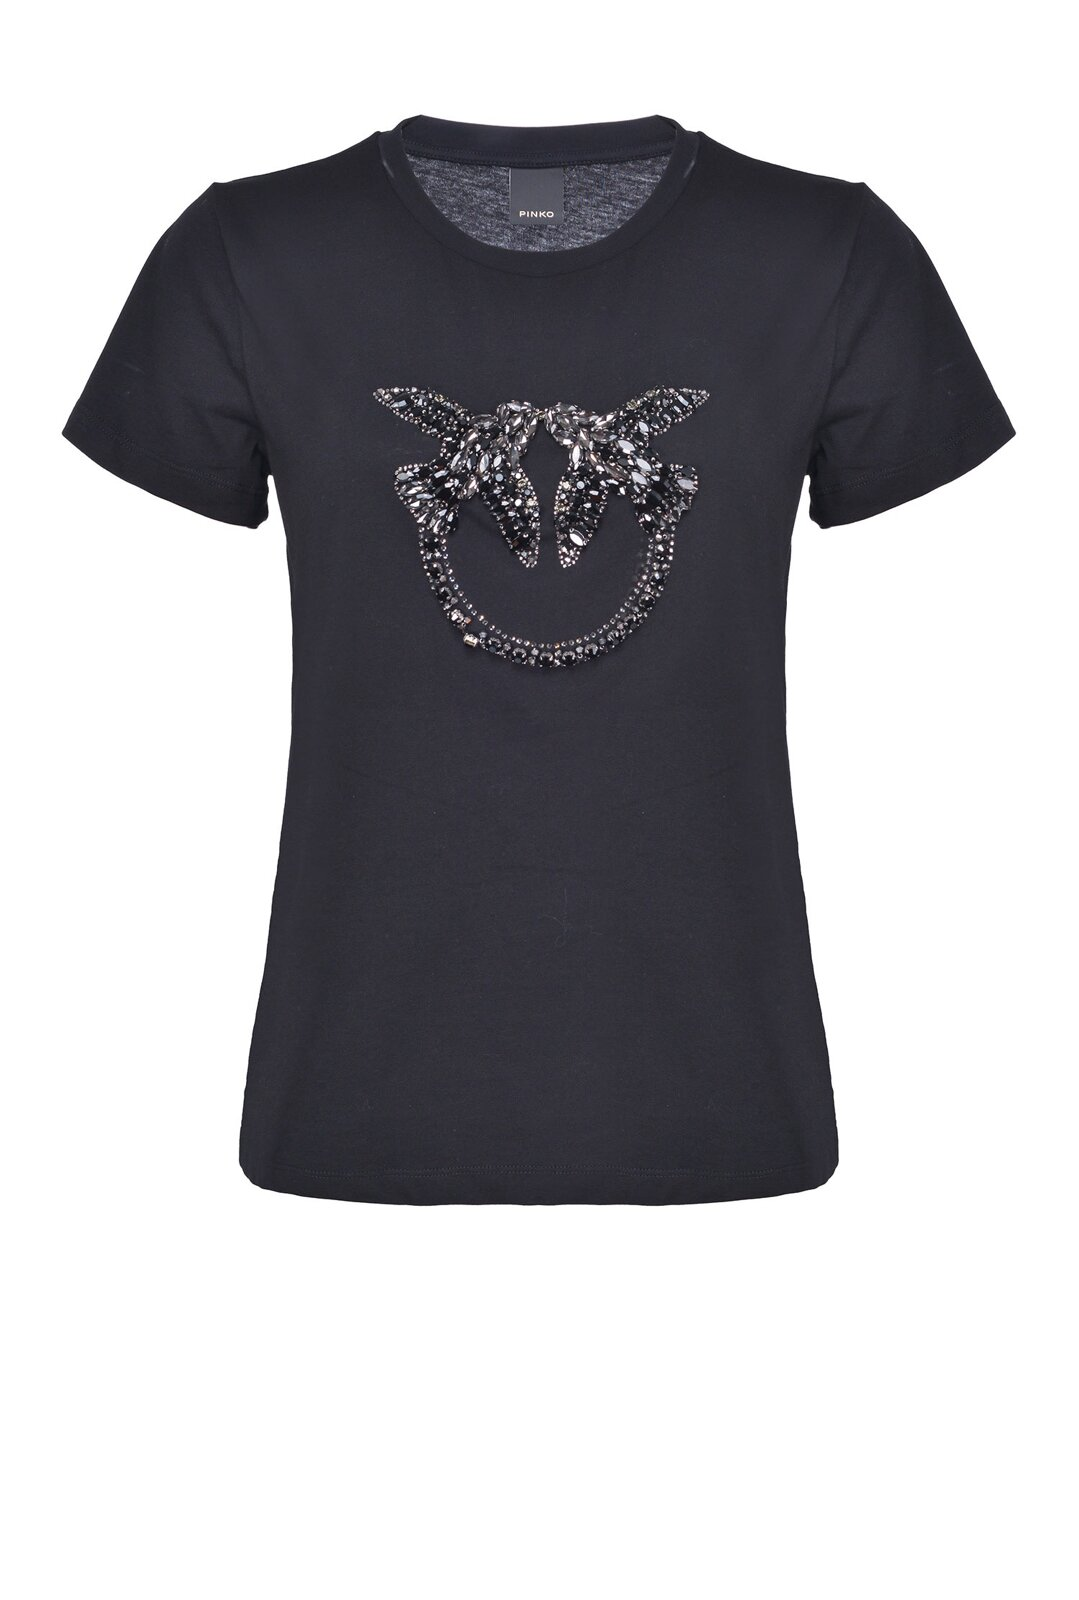 Love Birds Shiny Embroidered T-Shirt - Pinko